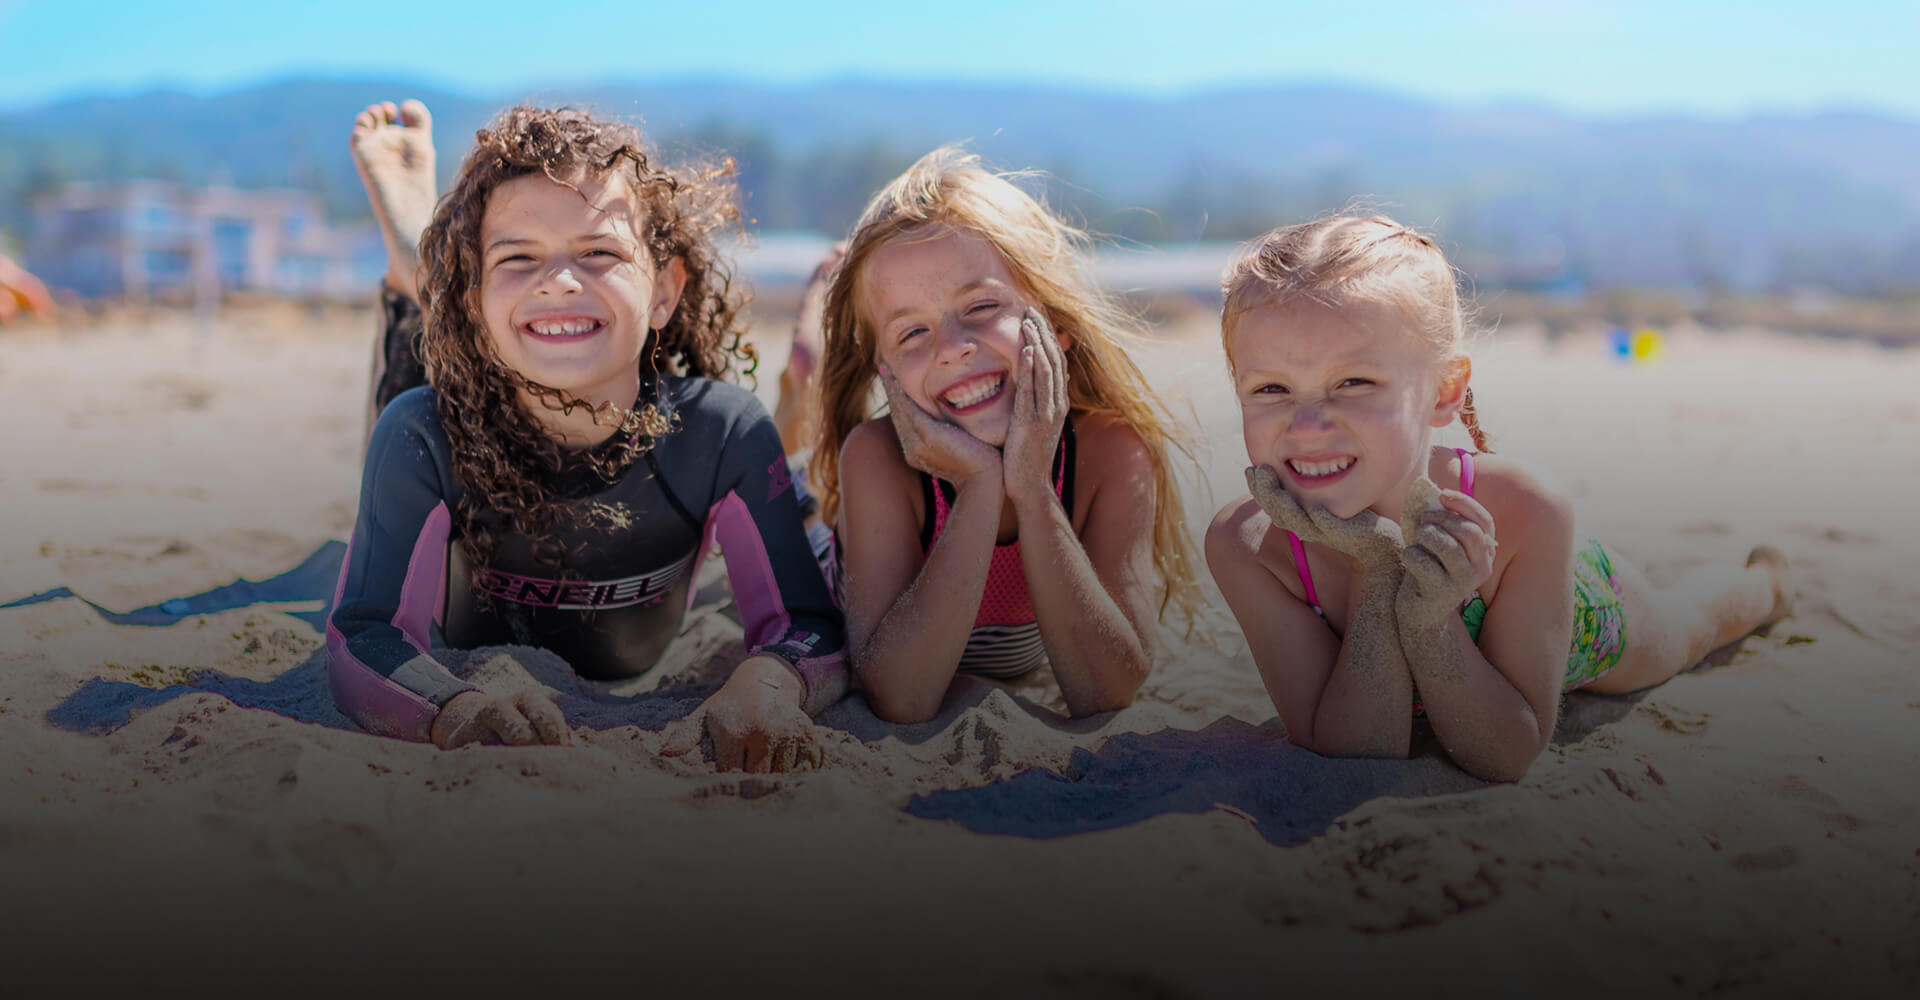 Smiling children on the beach who are the children of our Washington dentists at Smile Surfers